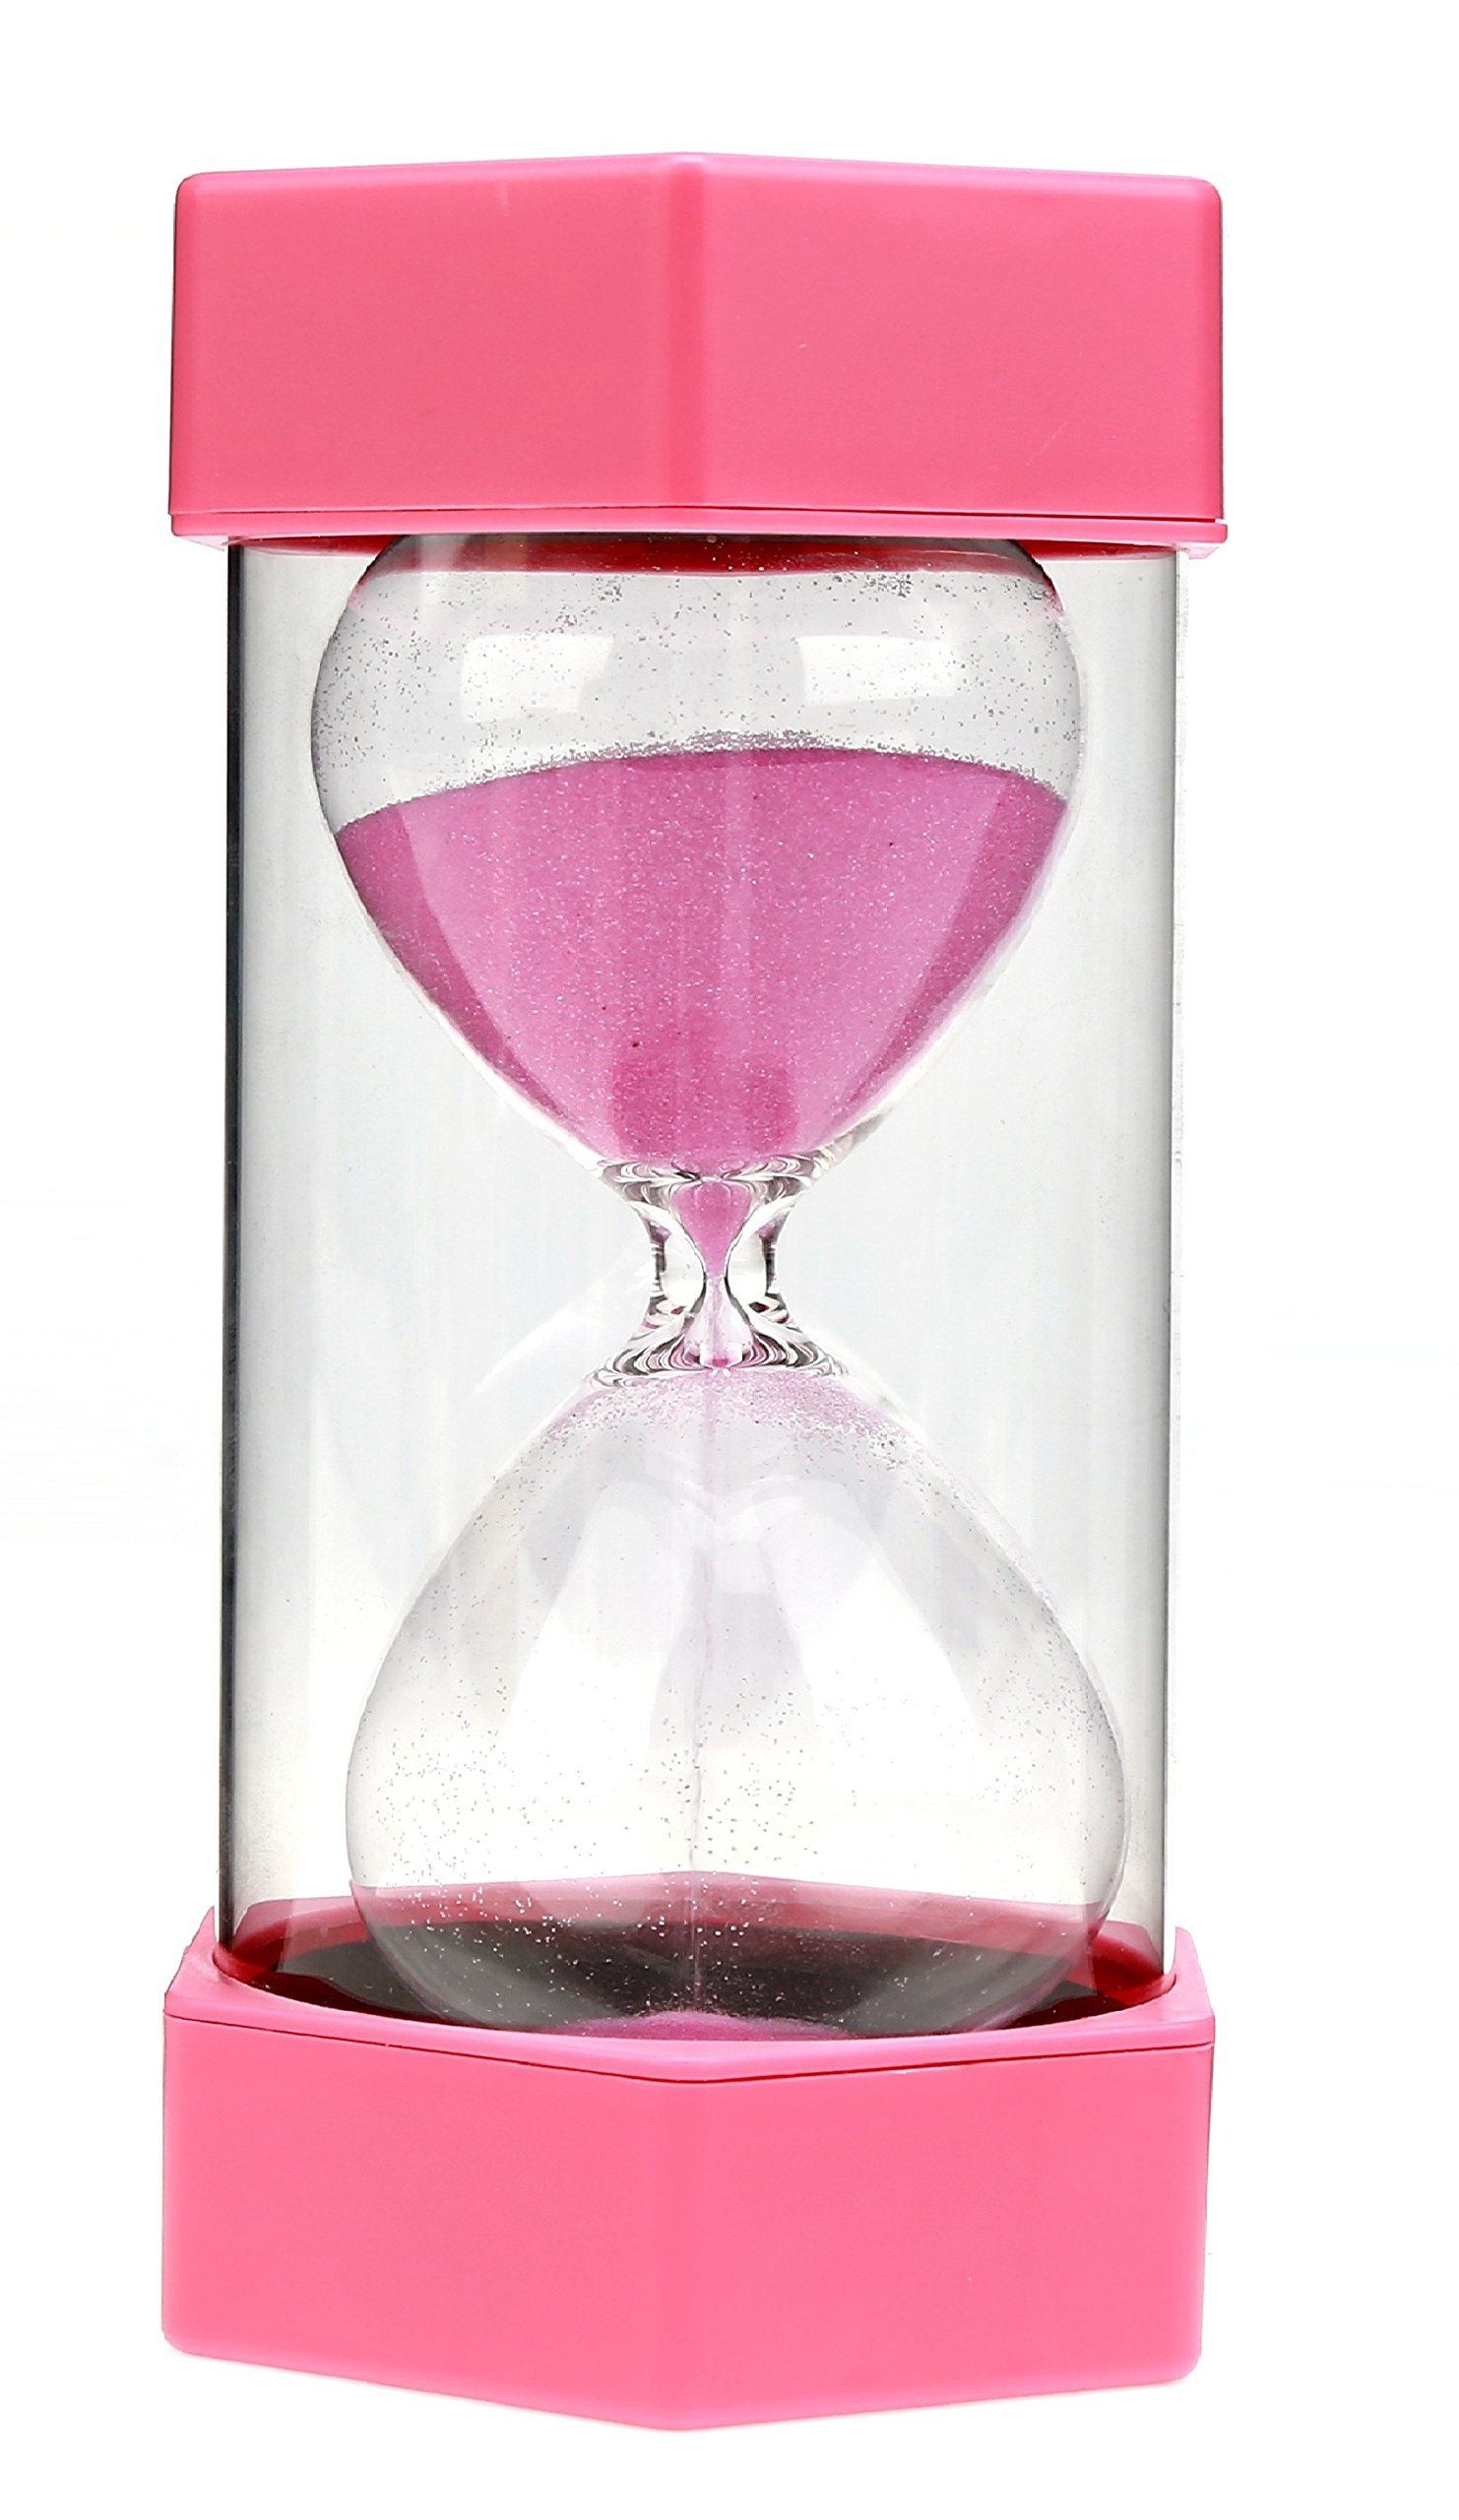 VEOLEY 10 Minute Sand Timer Security Fashion Hourglass for Kids, Classroom, Game,Kitchen,lunch-Pink